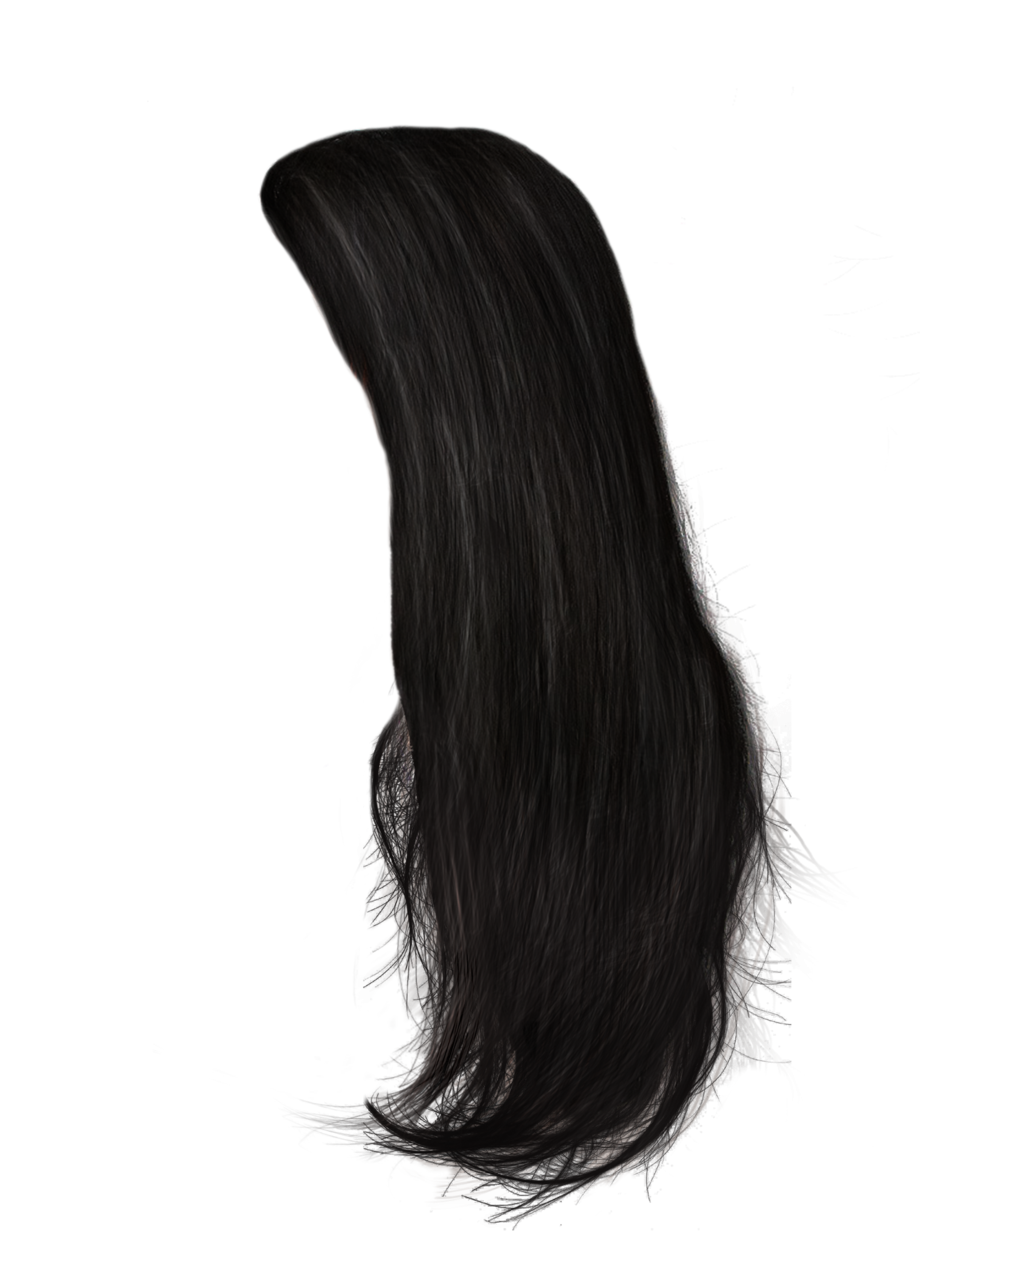 Women Hair PNG Images Transparent Free Download.